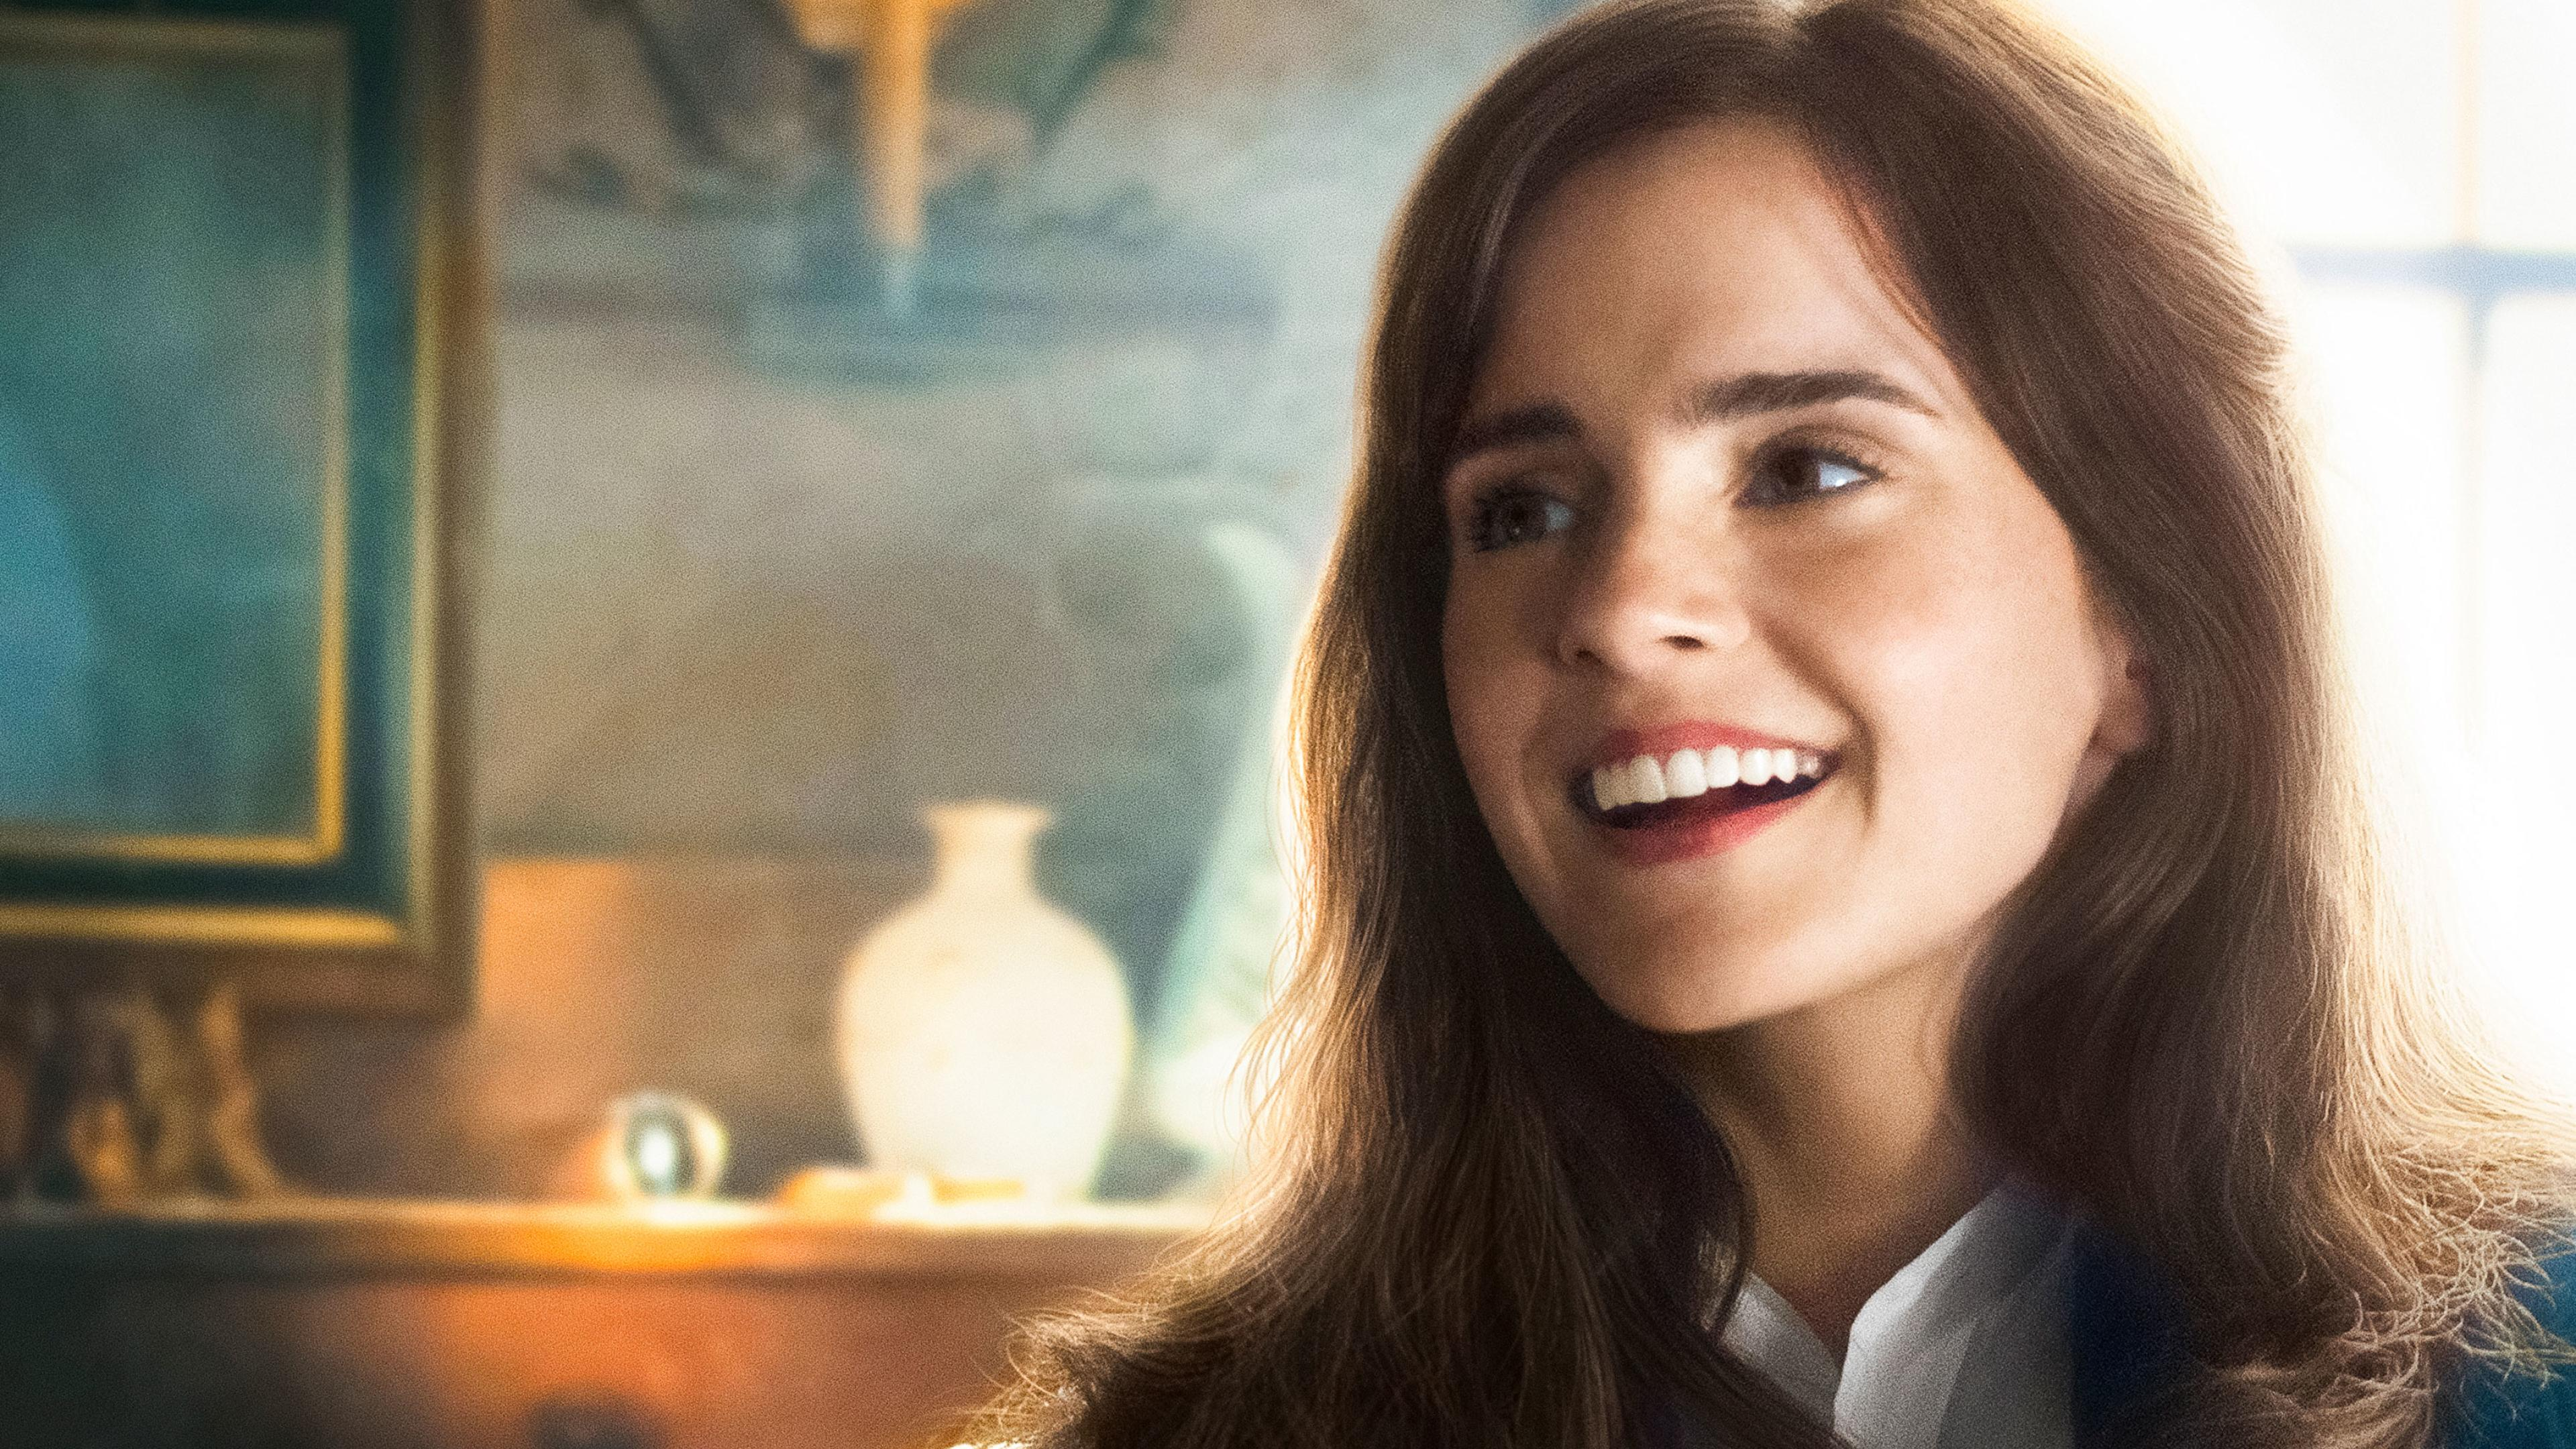 3840x2160 Emma Watson In Little Women 2019 4K Wallpaper, HD